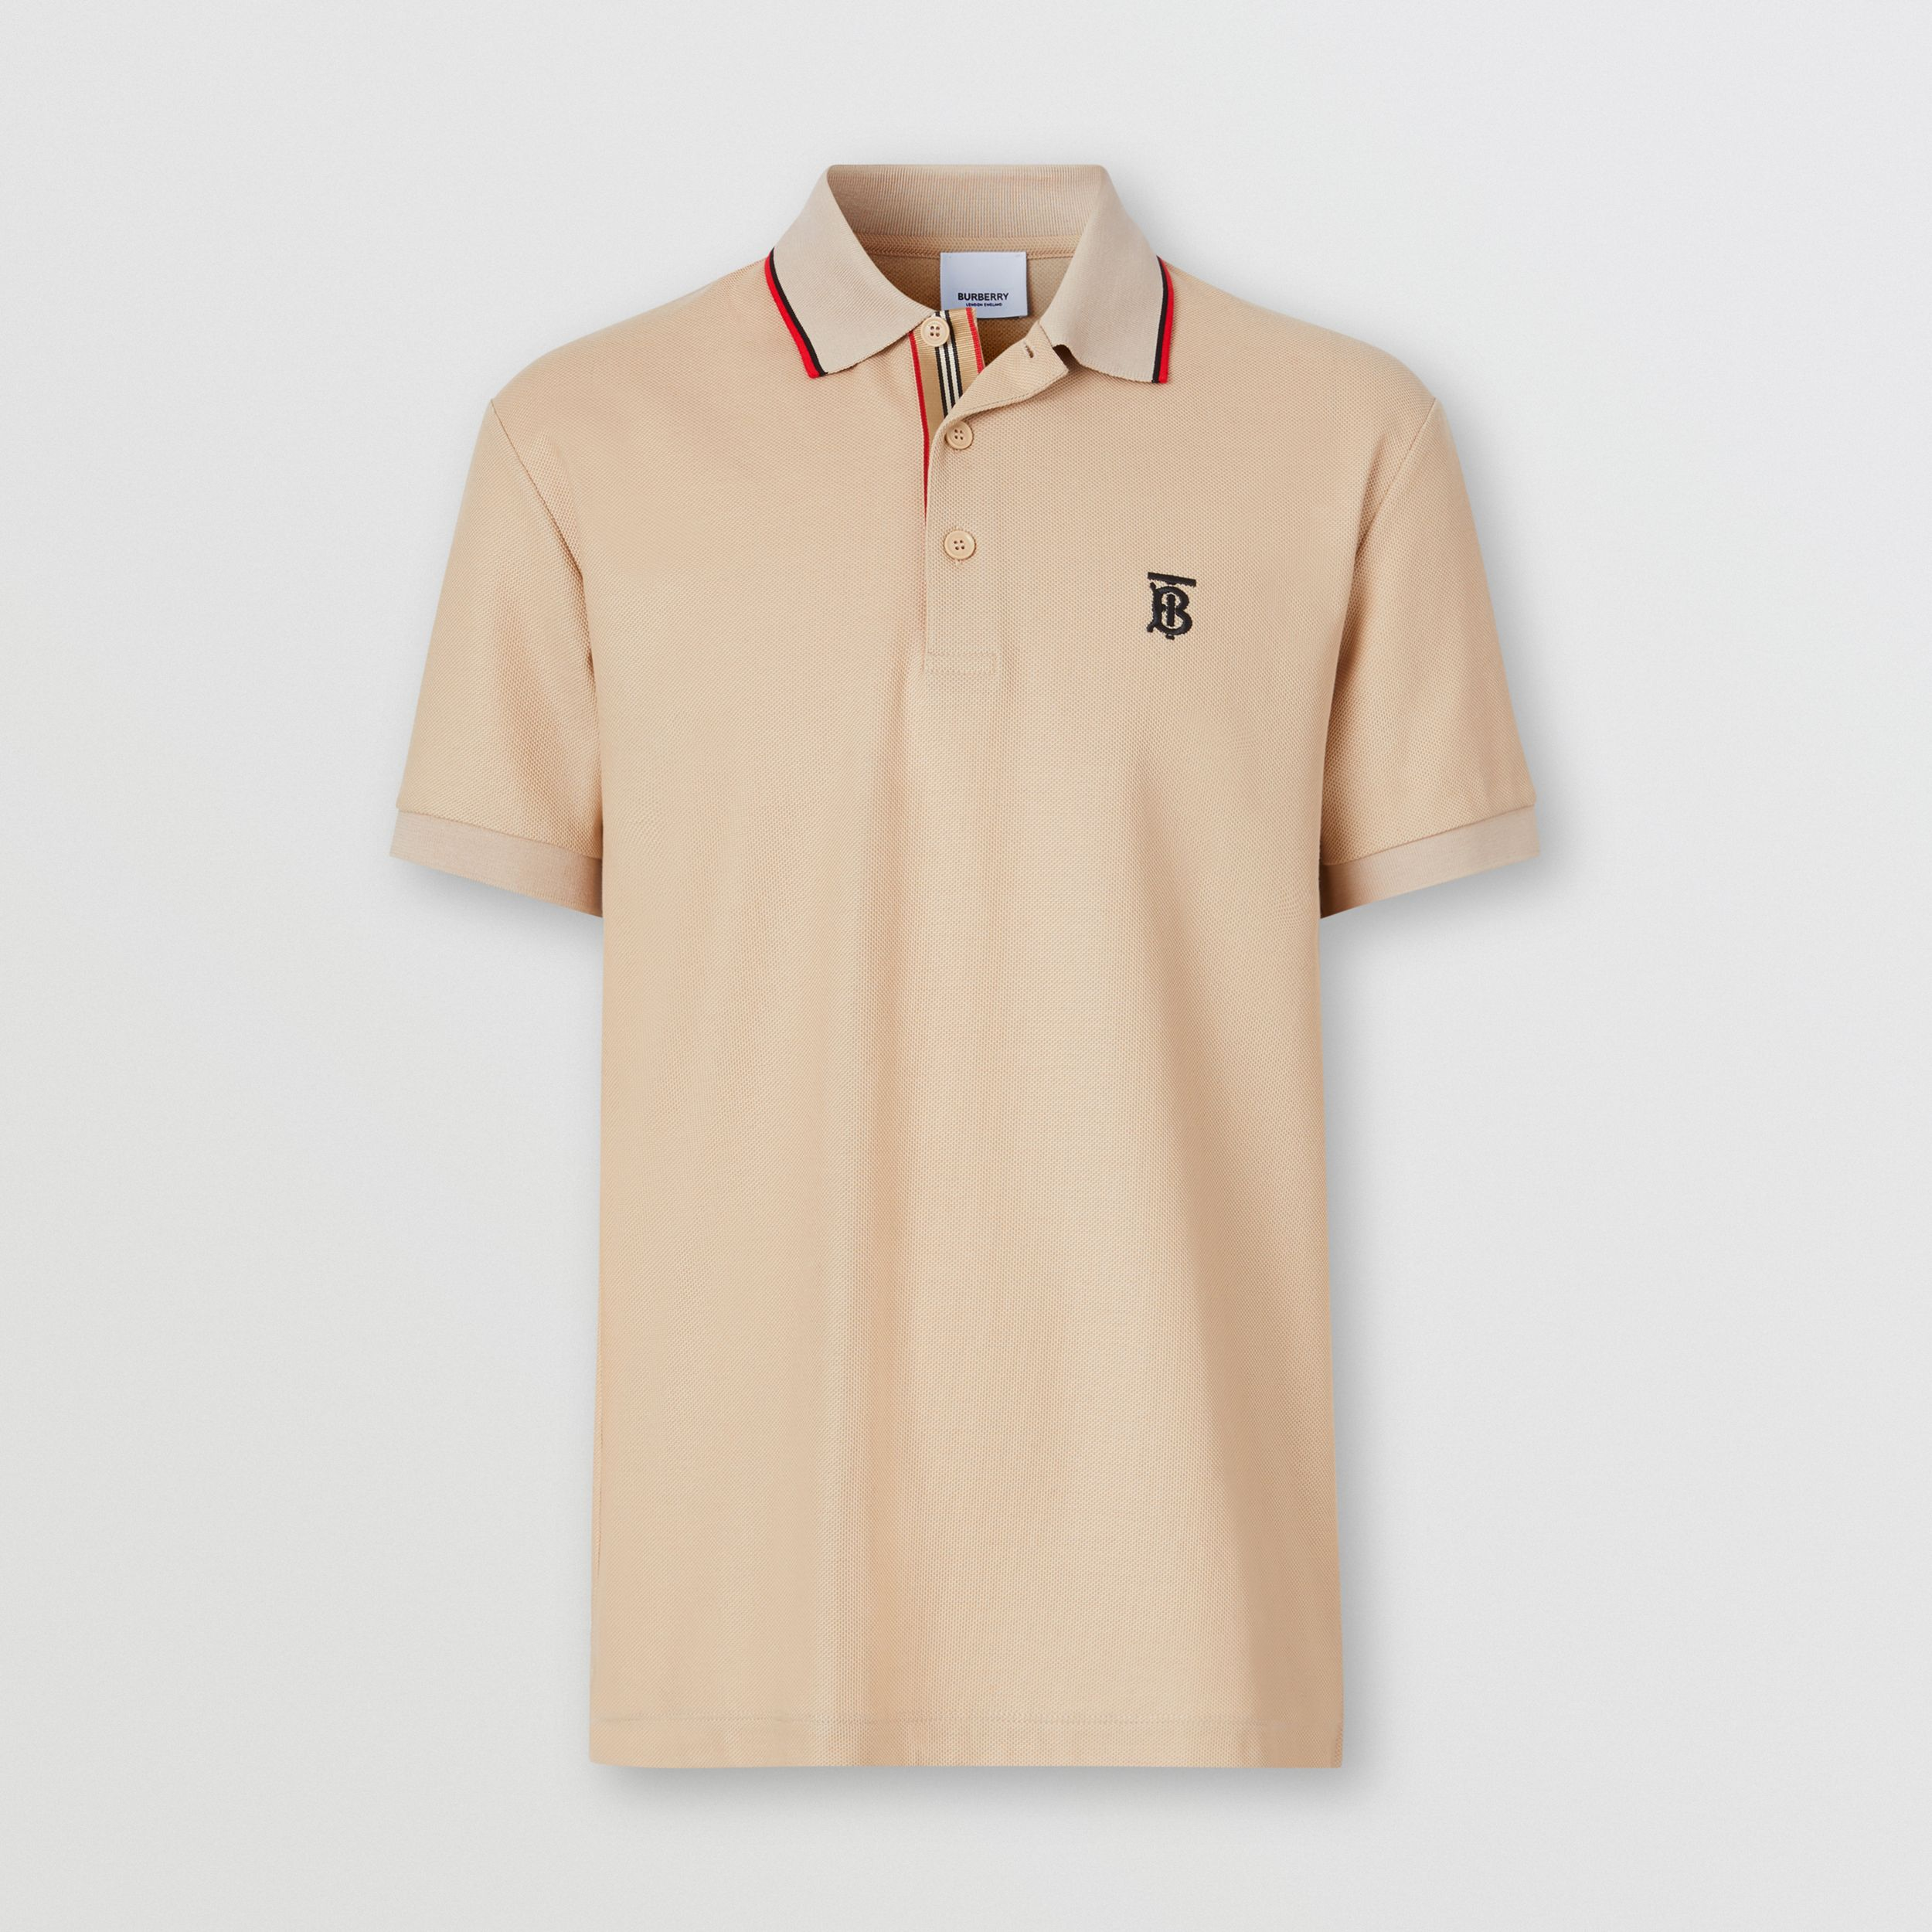 Monogram Motif Cotton Piqué Polo Shirt in Soft Fawn - Men | Burberry - 4